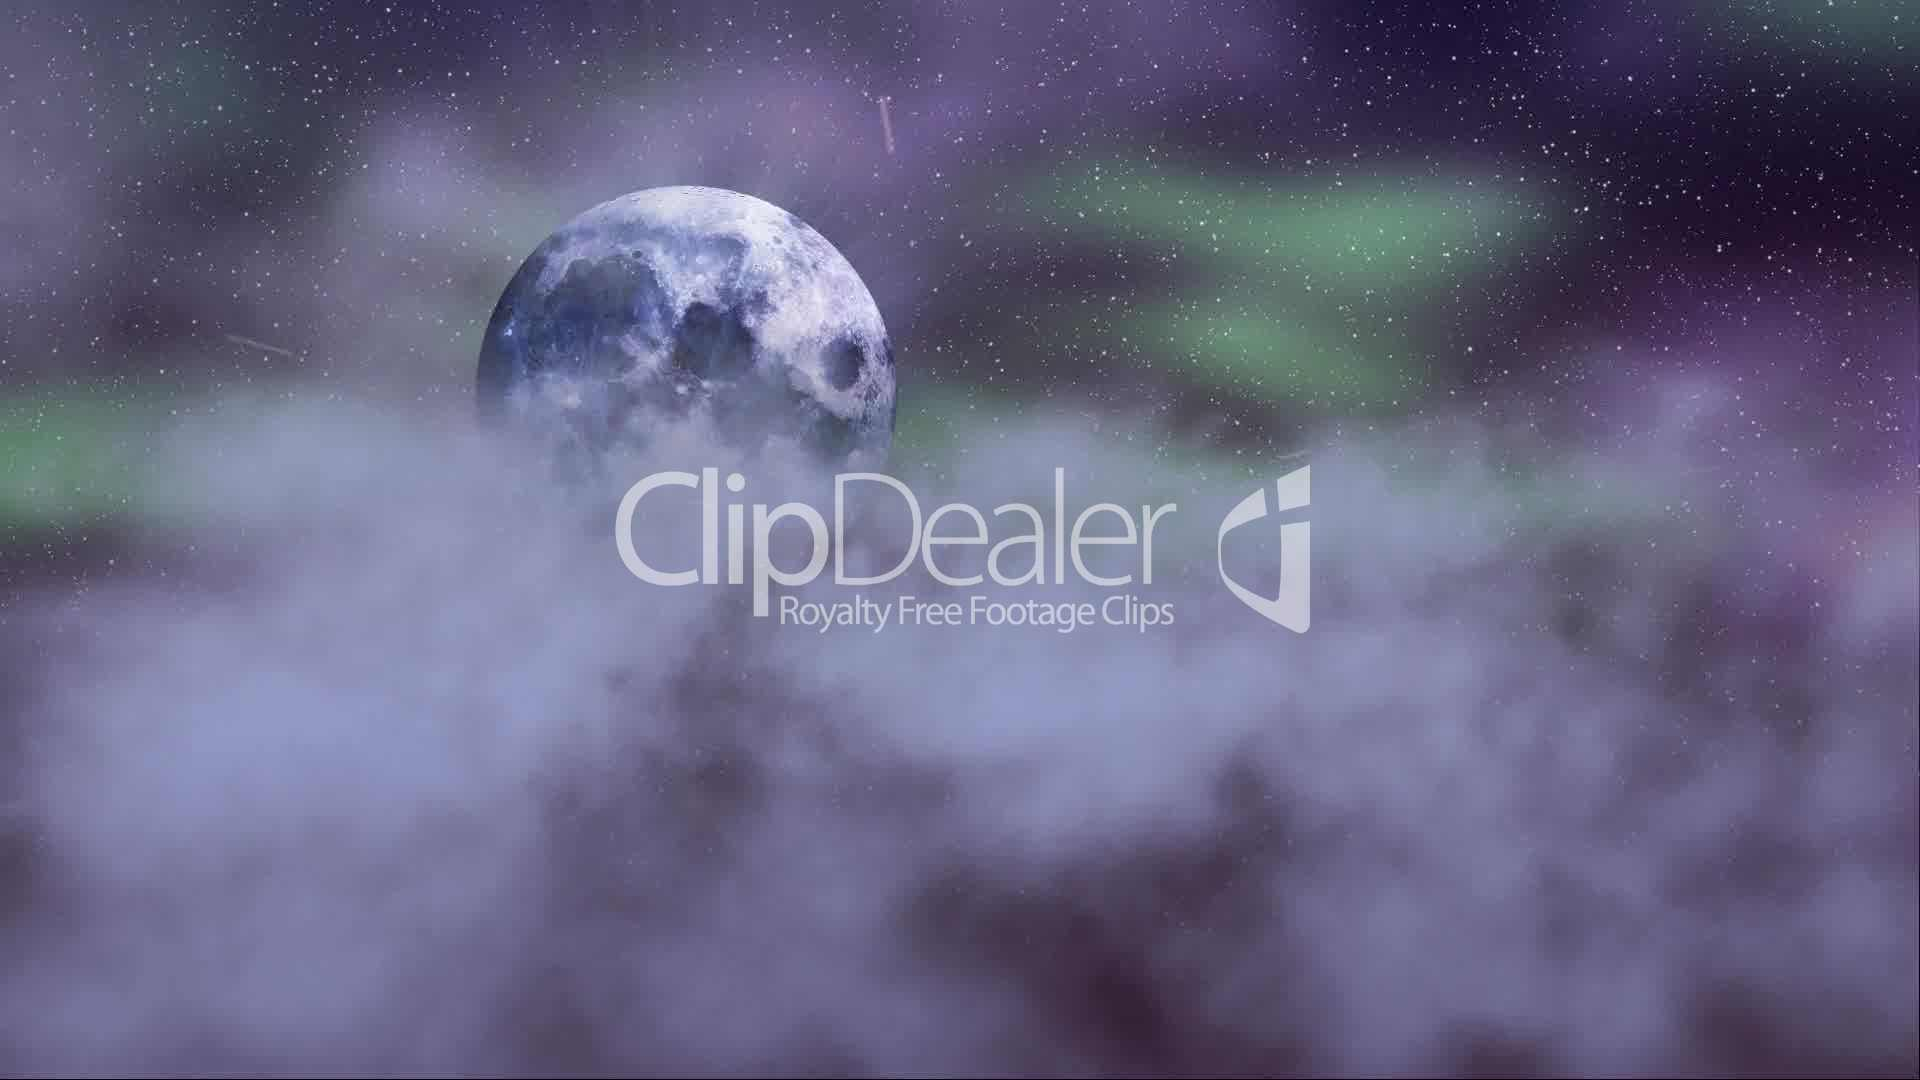 loopable flying through clouds on night sky with full moon: Royalty